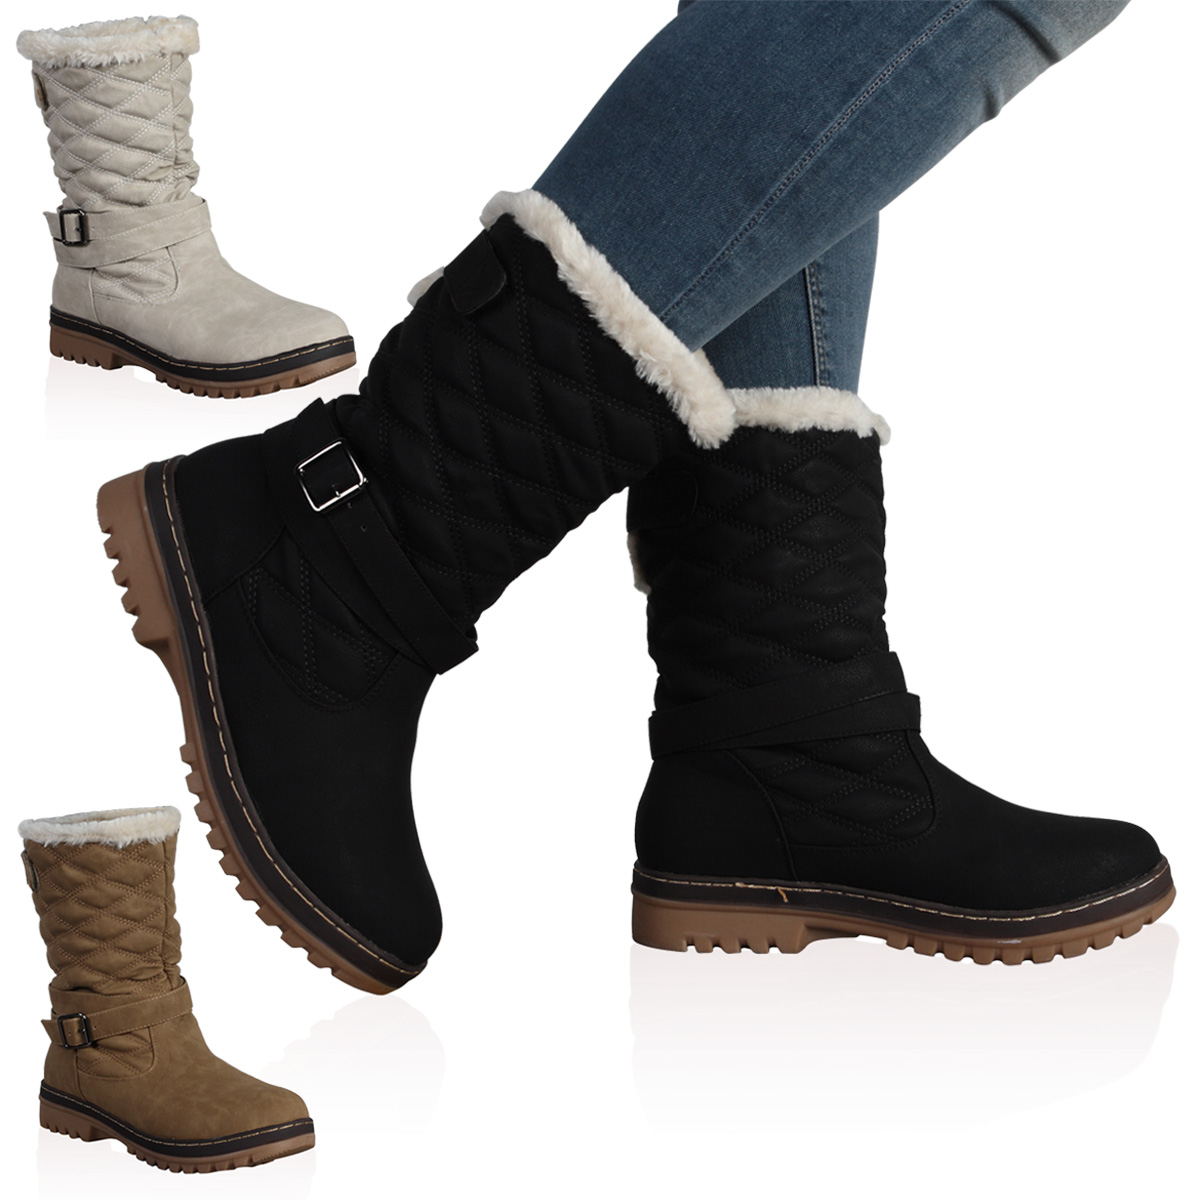 Winter Snow Boots Womens YPp4OlDA